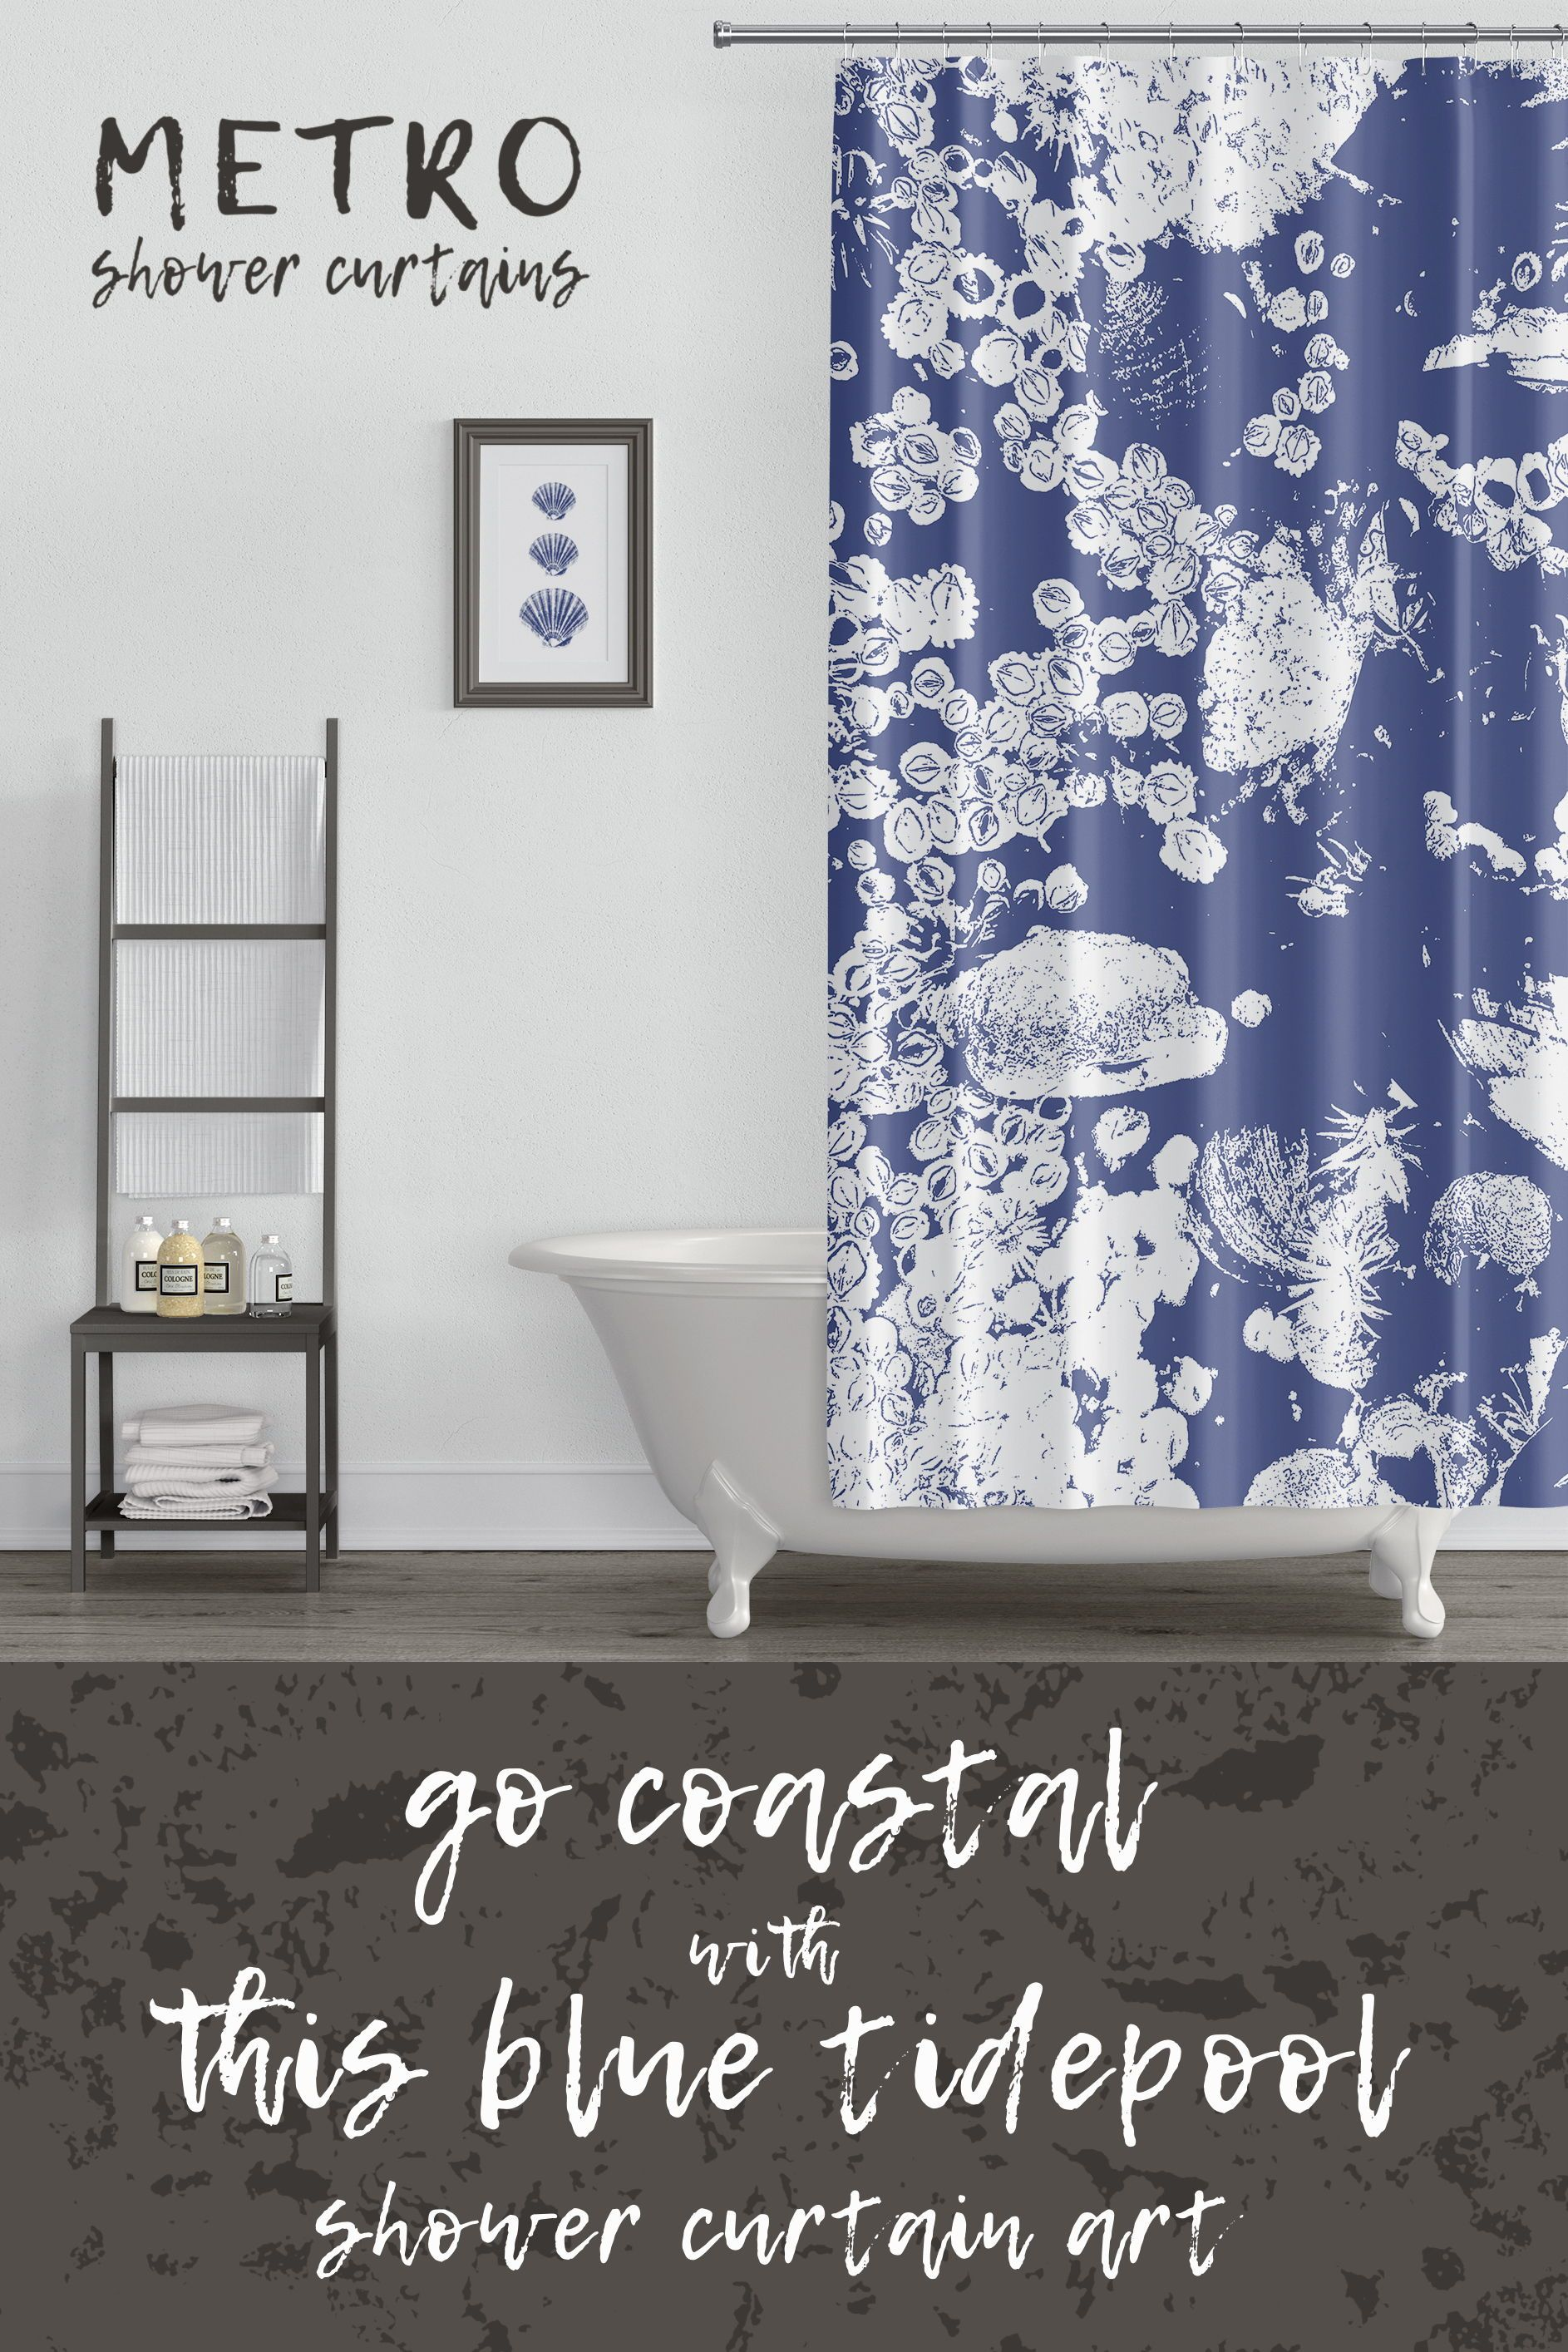 Cobalt Blue And White Northwestern Tidepool Shower Curtain Large